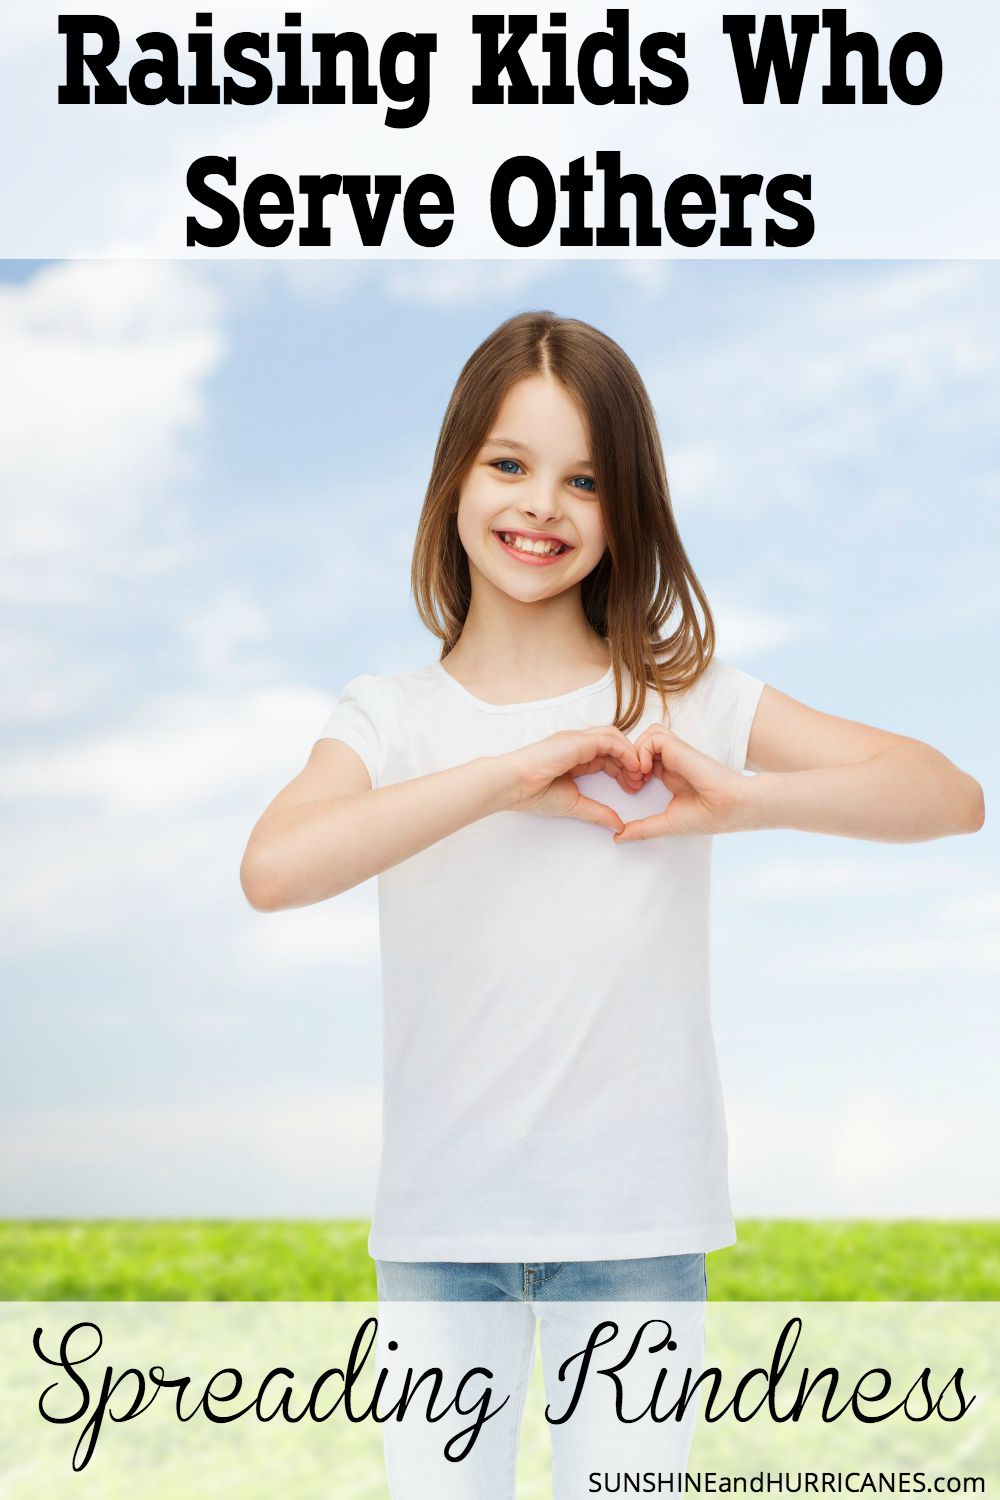 Do you want to raise children who have a heart for helping others? There are many easy and even fun ways we can engage our children in making the world around them a better place. Here we talk about Raising Kids Who Serve Others by Spreading Kindness. SunshineandHurricanes.com